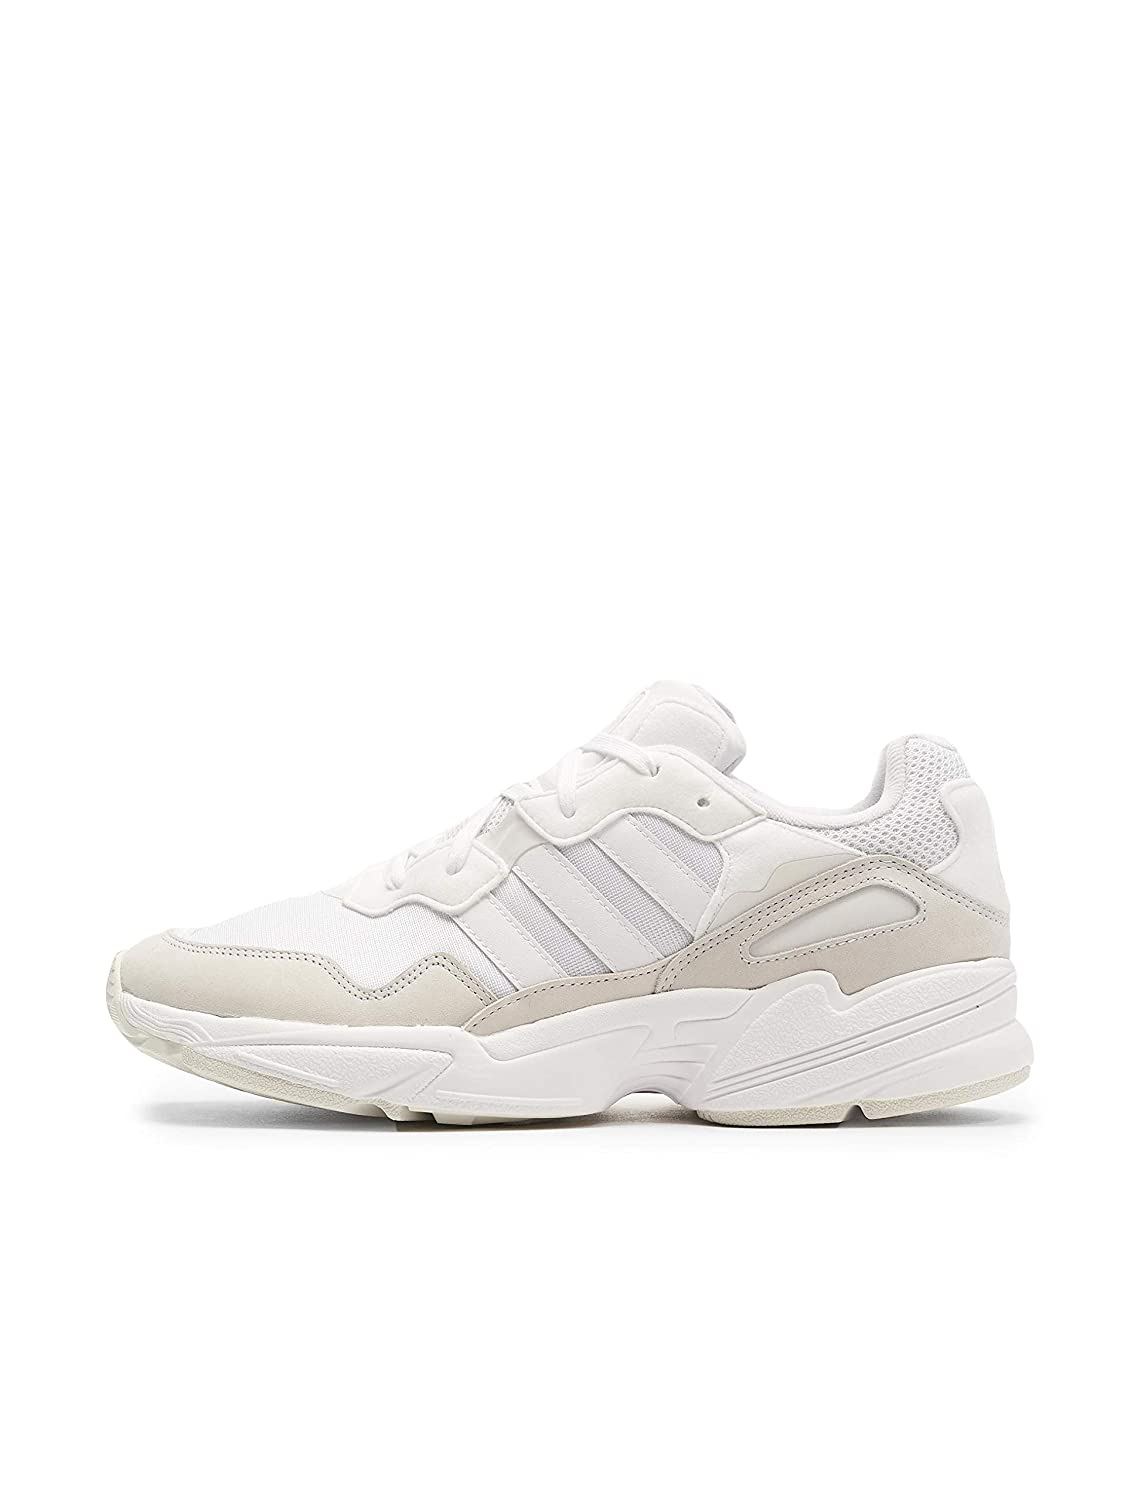 blanc adidas Yung-96 Ee3681, paniers Basses Homme